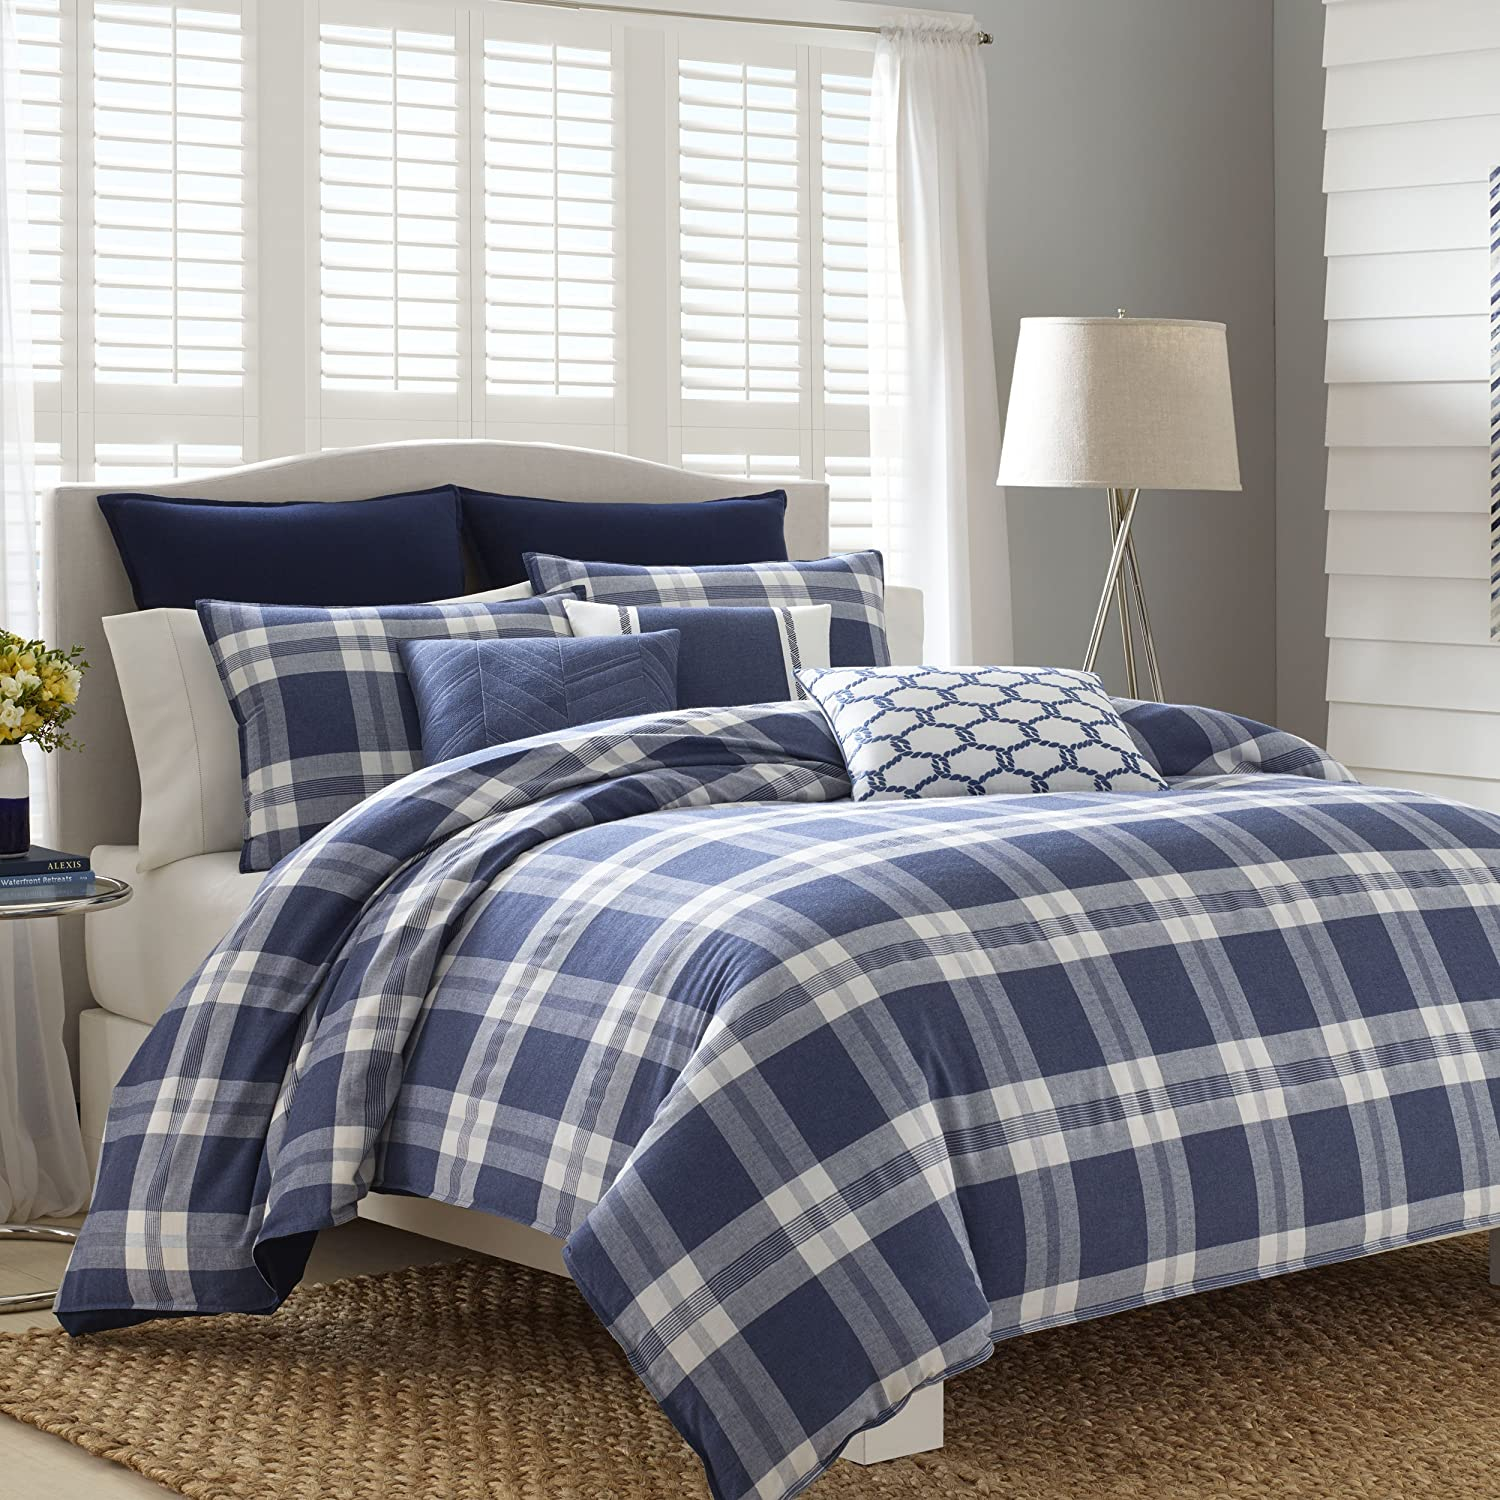 Nautica Bedding Sets Will Look Absolutely Wonderful In